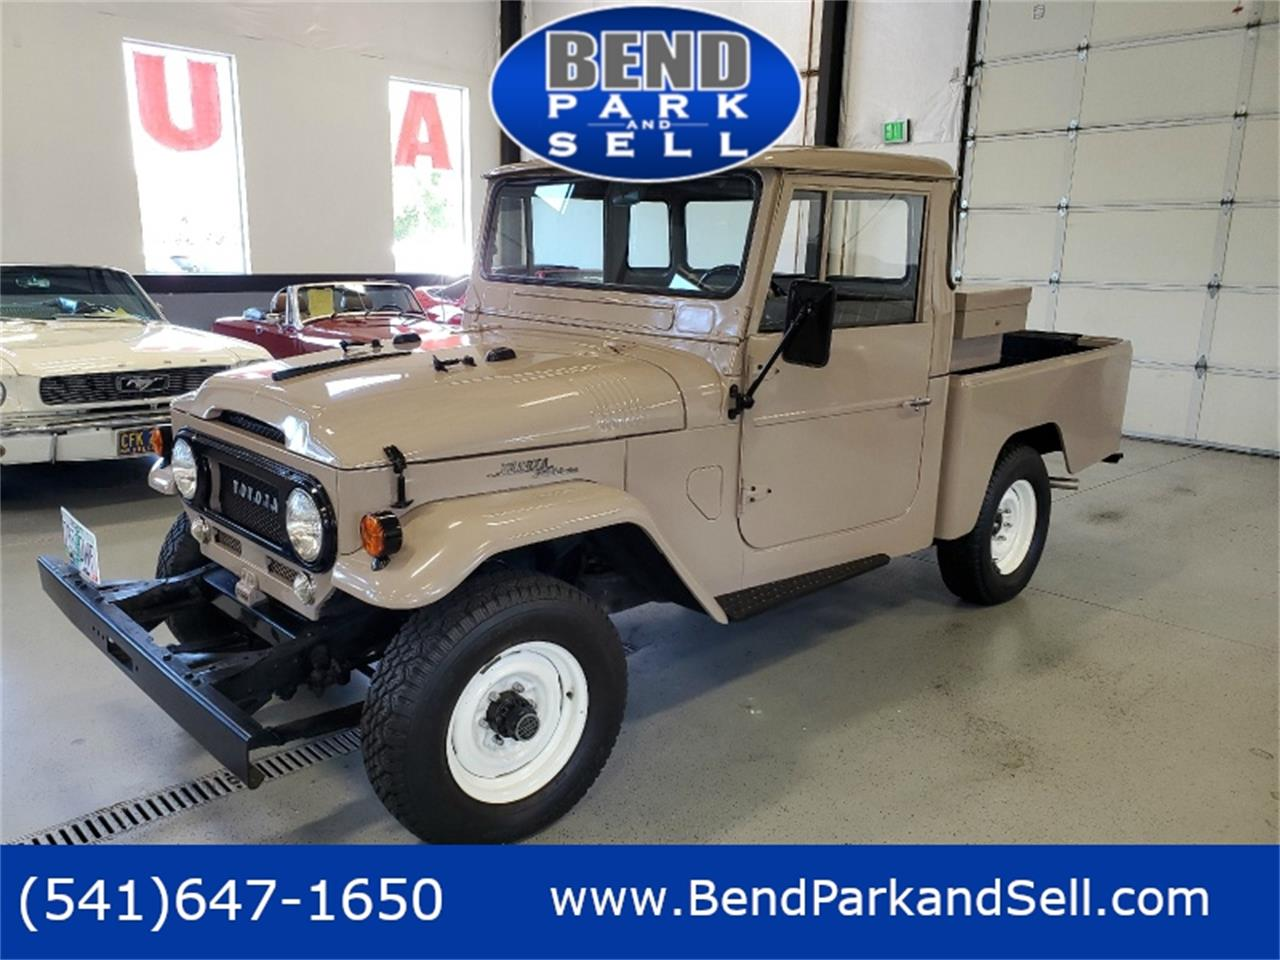 for sale 1964 toyota land cruiser fj45 in bend, oregon cars - bend, or at geebo